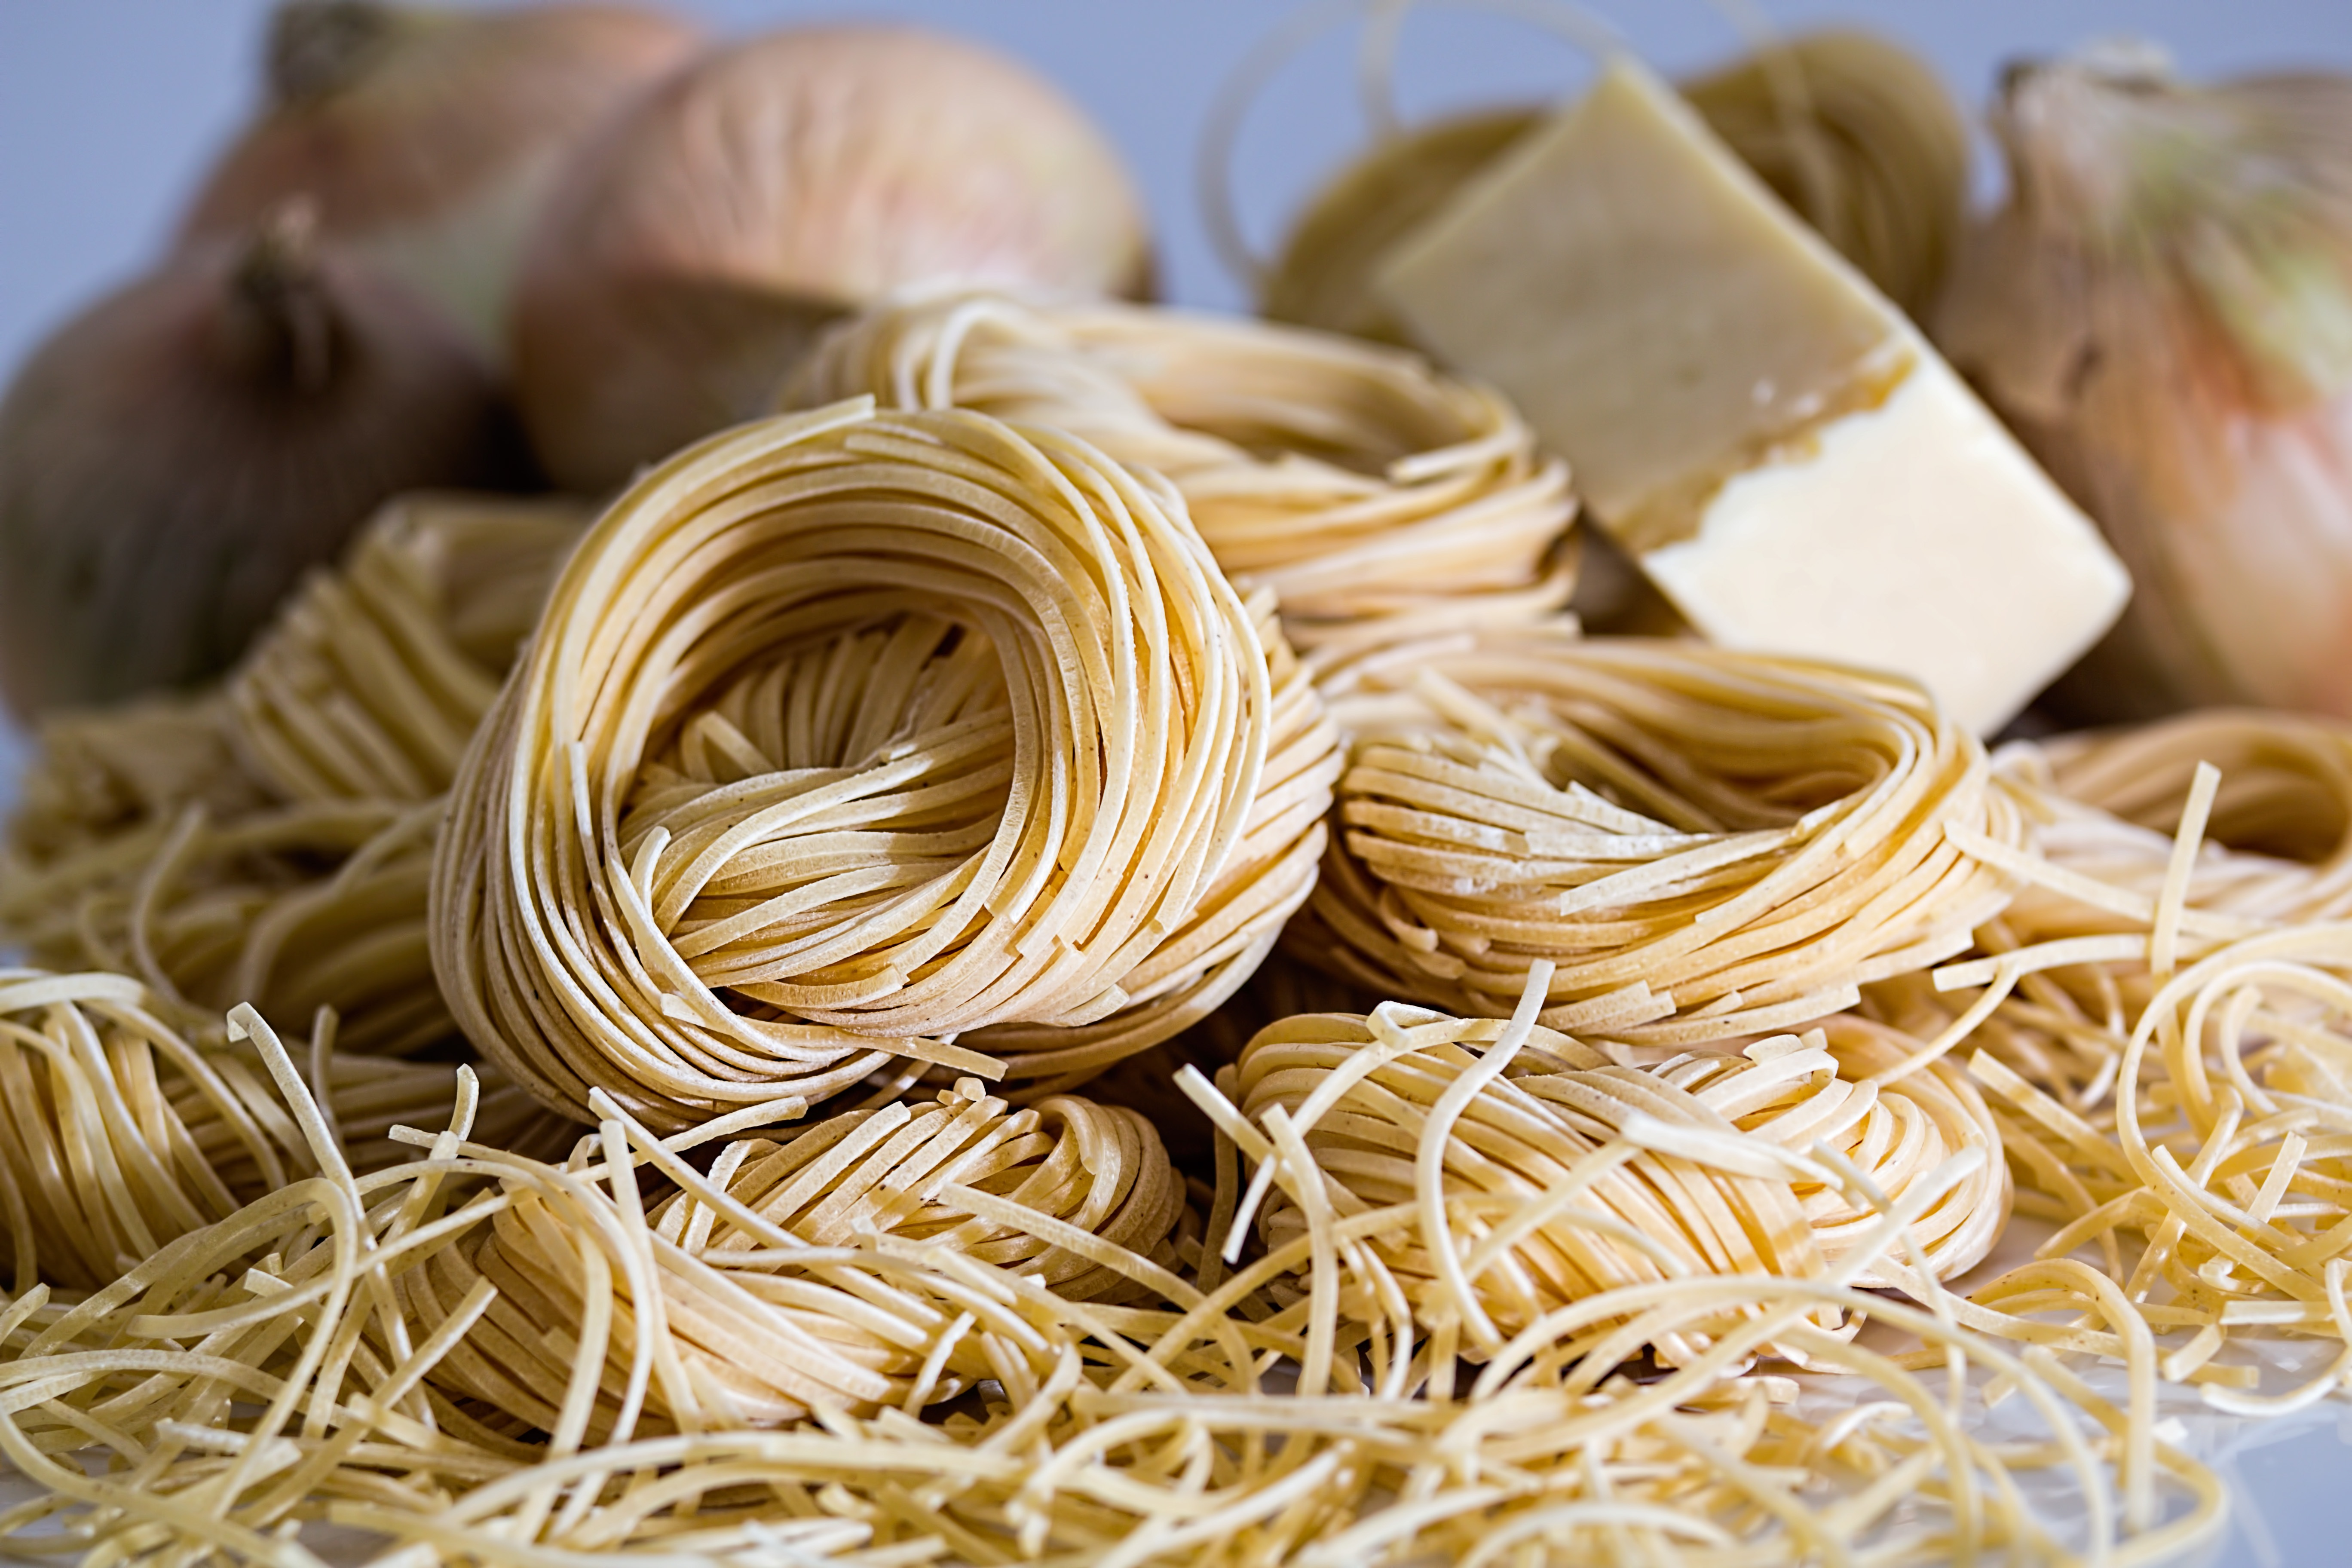 Hocking College Faculty | Homemade Pasta<br>Master Chef Alfonso Contrisciani